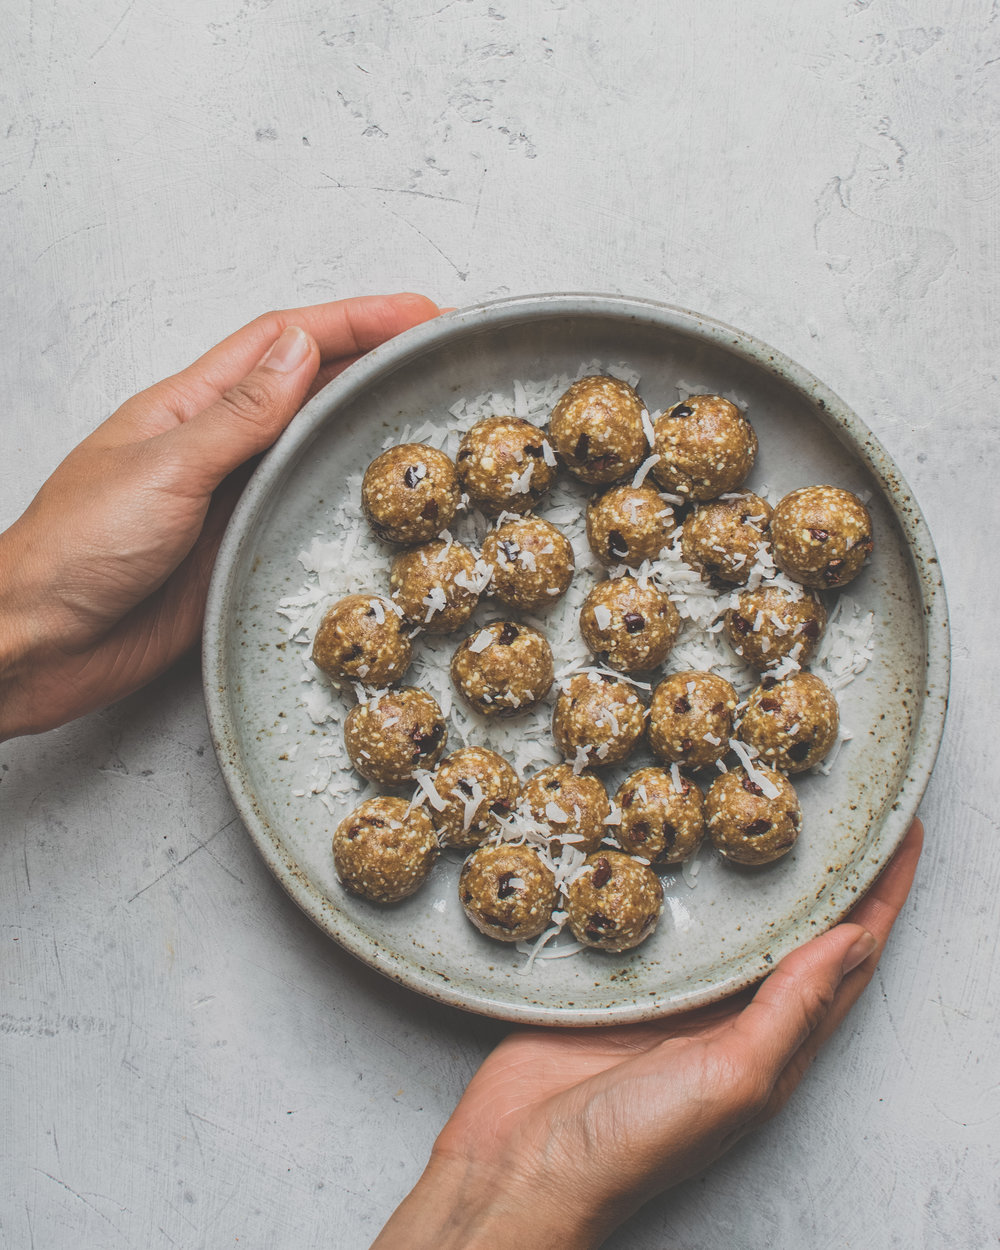 Salted Caramel Cookie Dough Bites* - Raw Vegan, Gluten-Free, Paleo